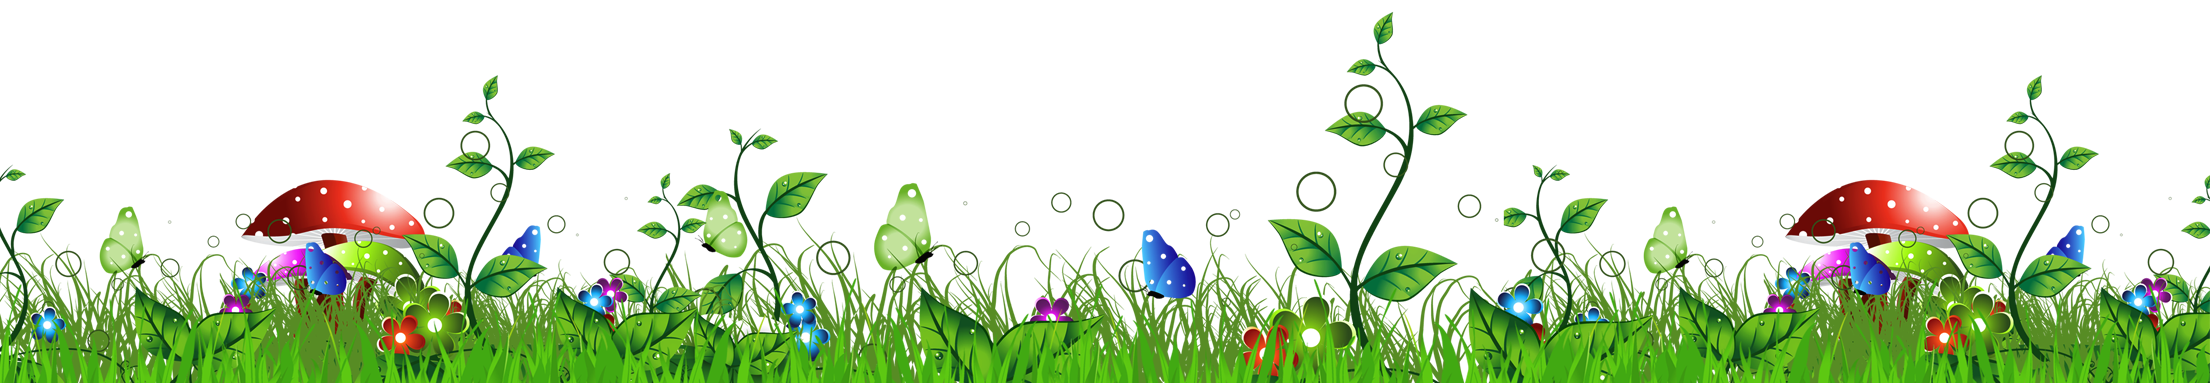 Frame clipart mushroom Full with Grass Yopriceville